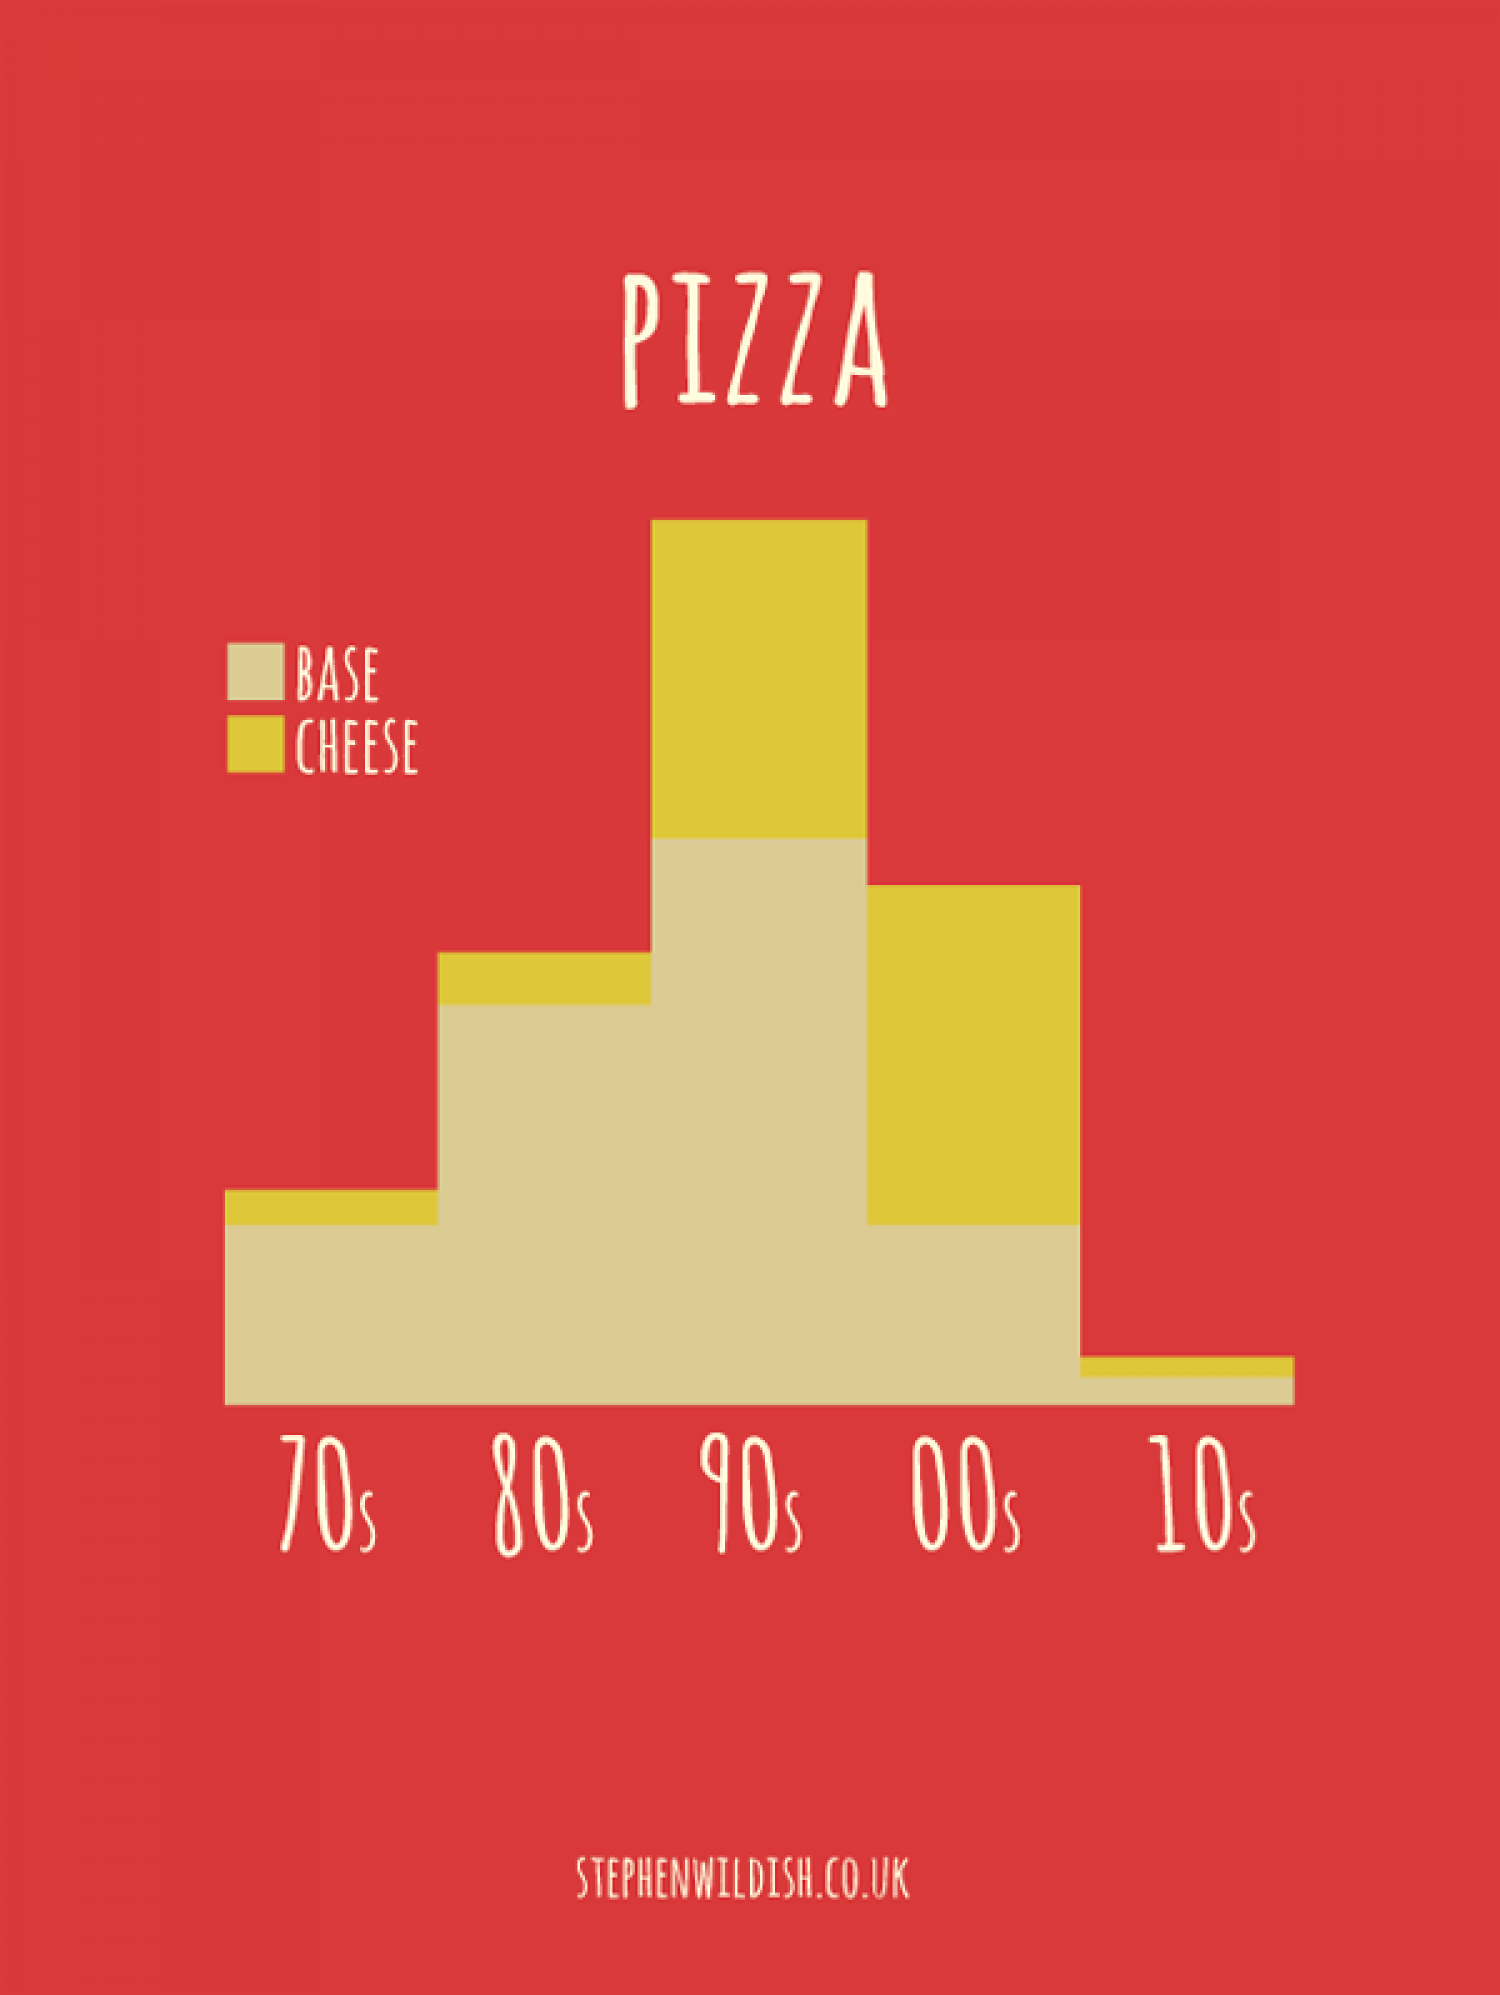 Pizza Bar Graph Infographic